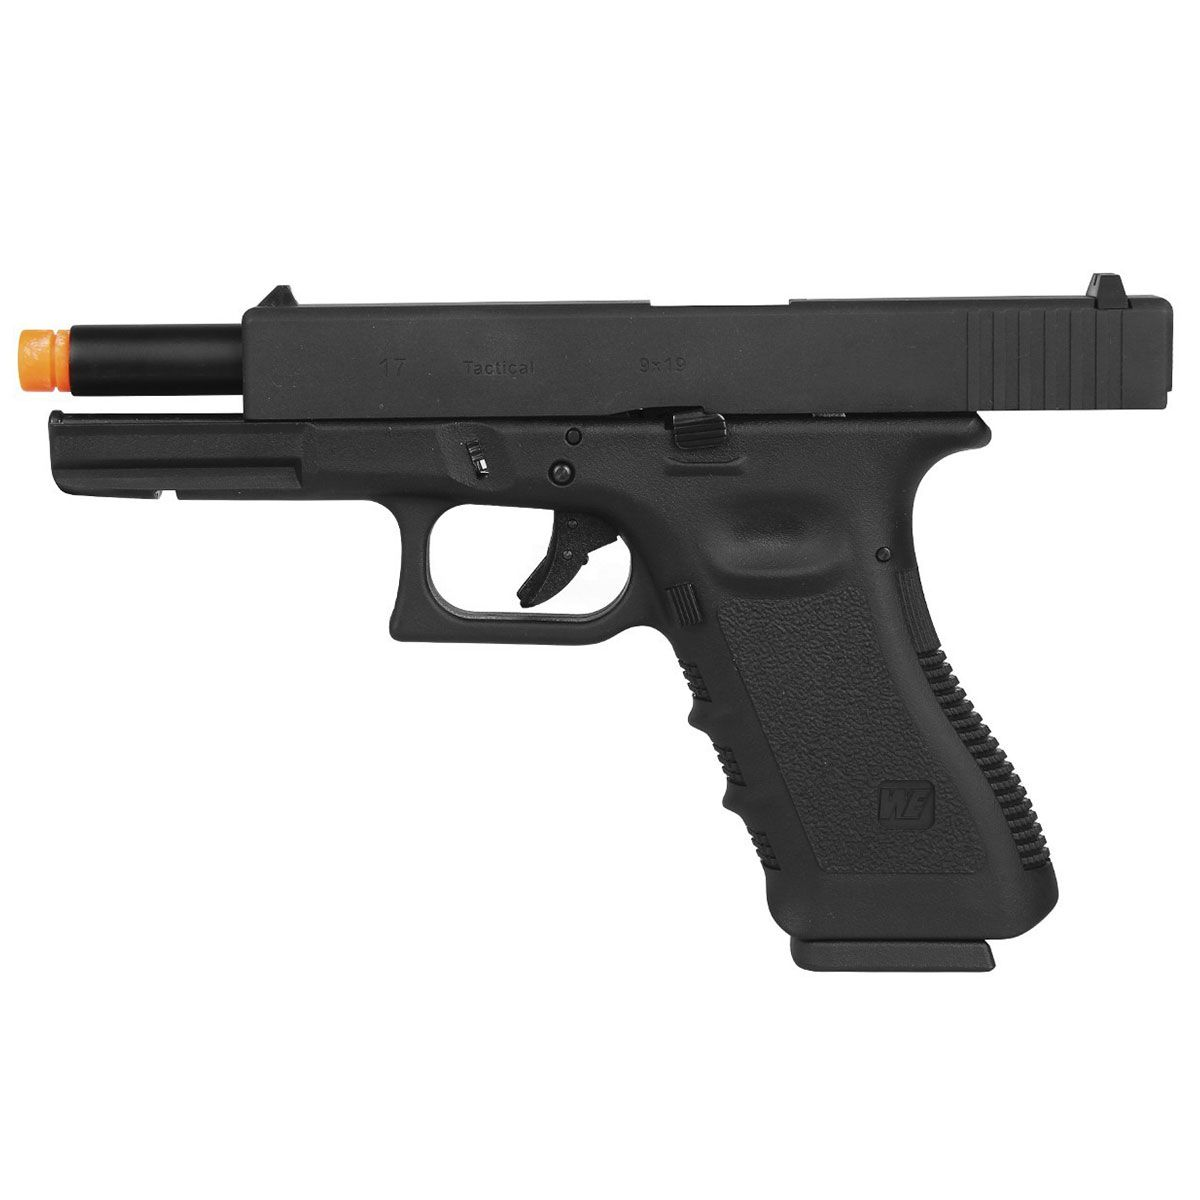 Pistola de Airsoft WE a Gás GBB G17A Blowback GEN 3 6mm